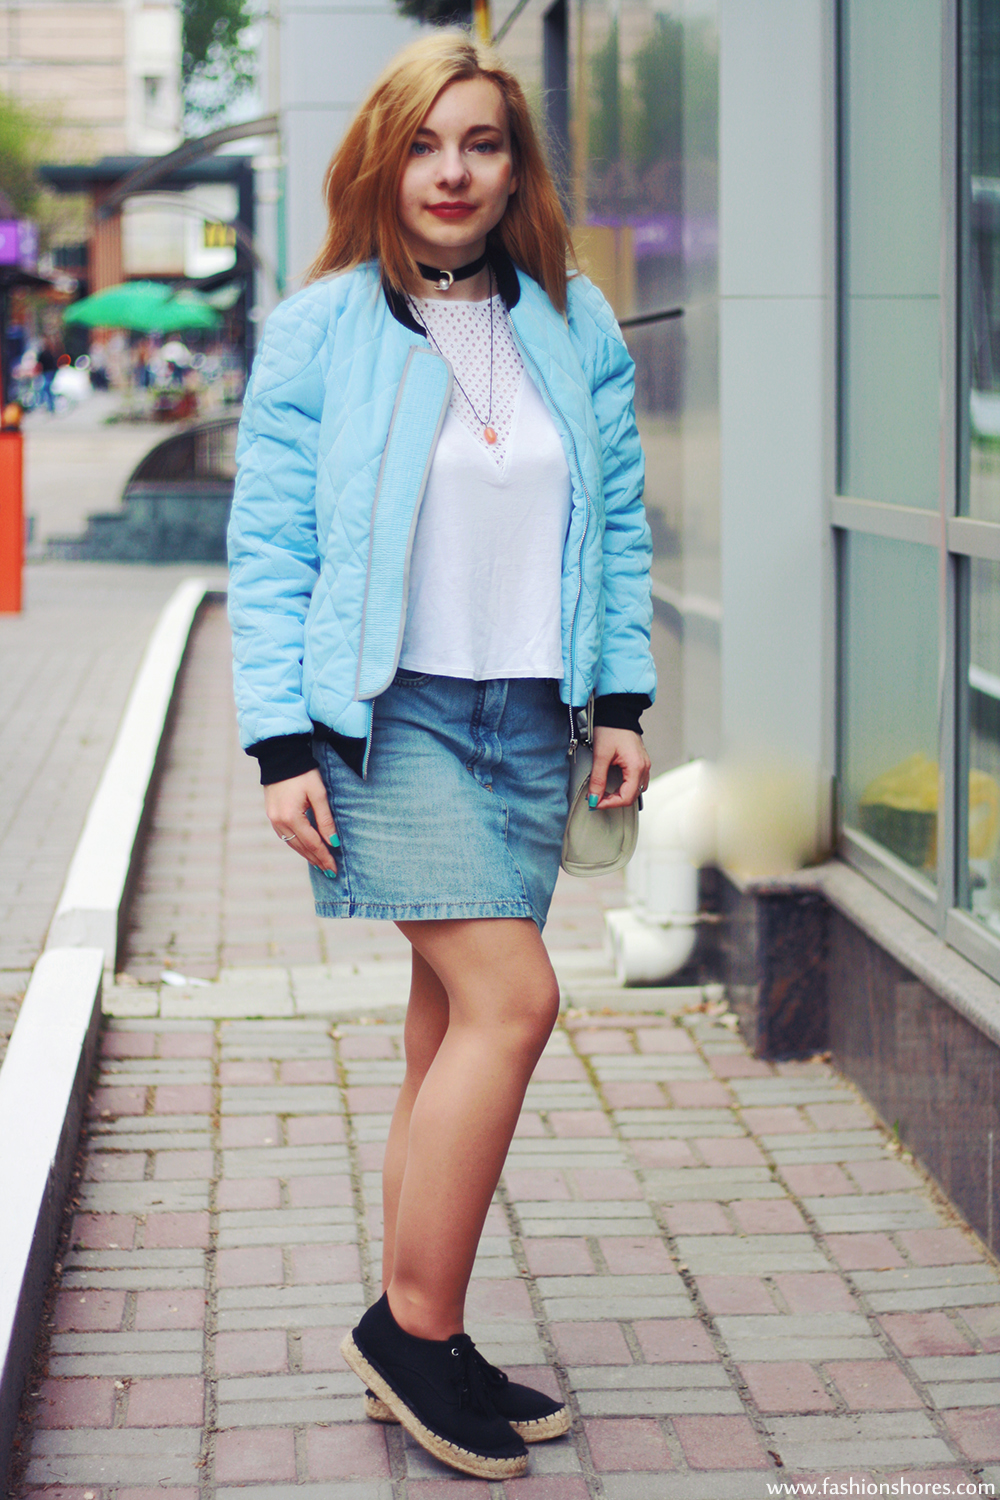 Fashion Shores - Blog by Victoria Burbulea: THE BOMBER JACKET AND ...